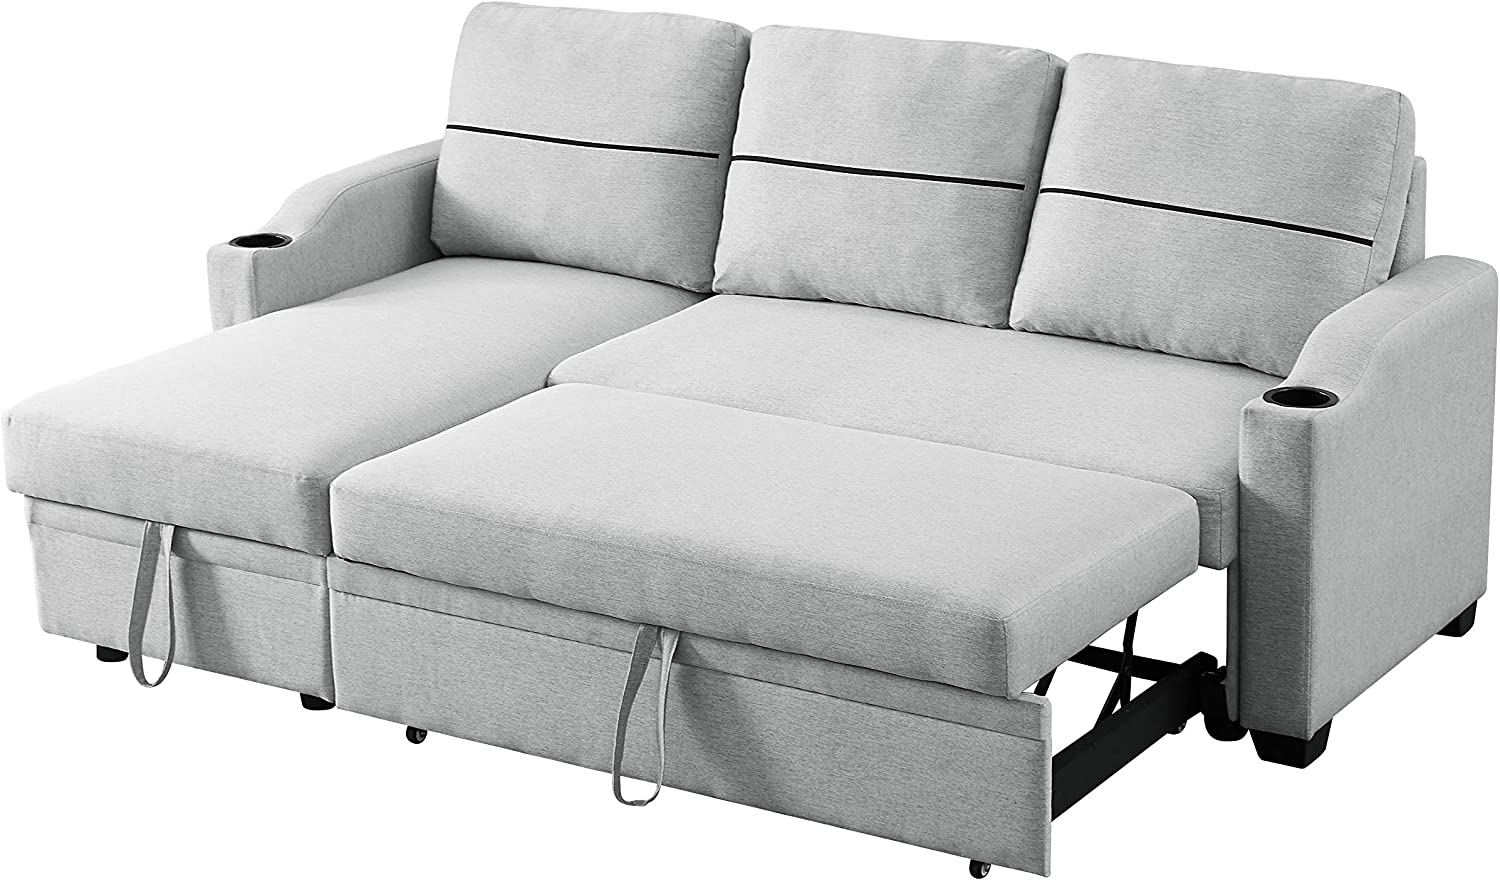 GAOPAN Bed Corner Storage, Modern Fabric Pull-Out Linen Reversible/Sectional Sleeper Sofa with Left/Right Hand Chaise Lounge for Living Room, Light Gray